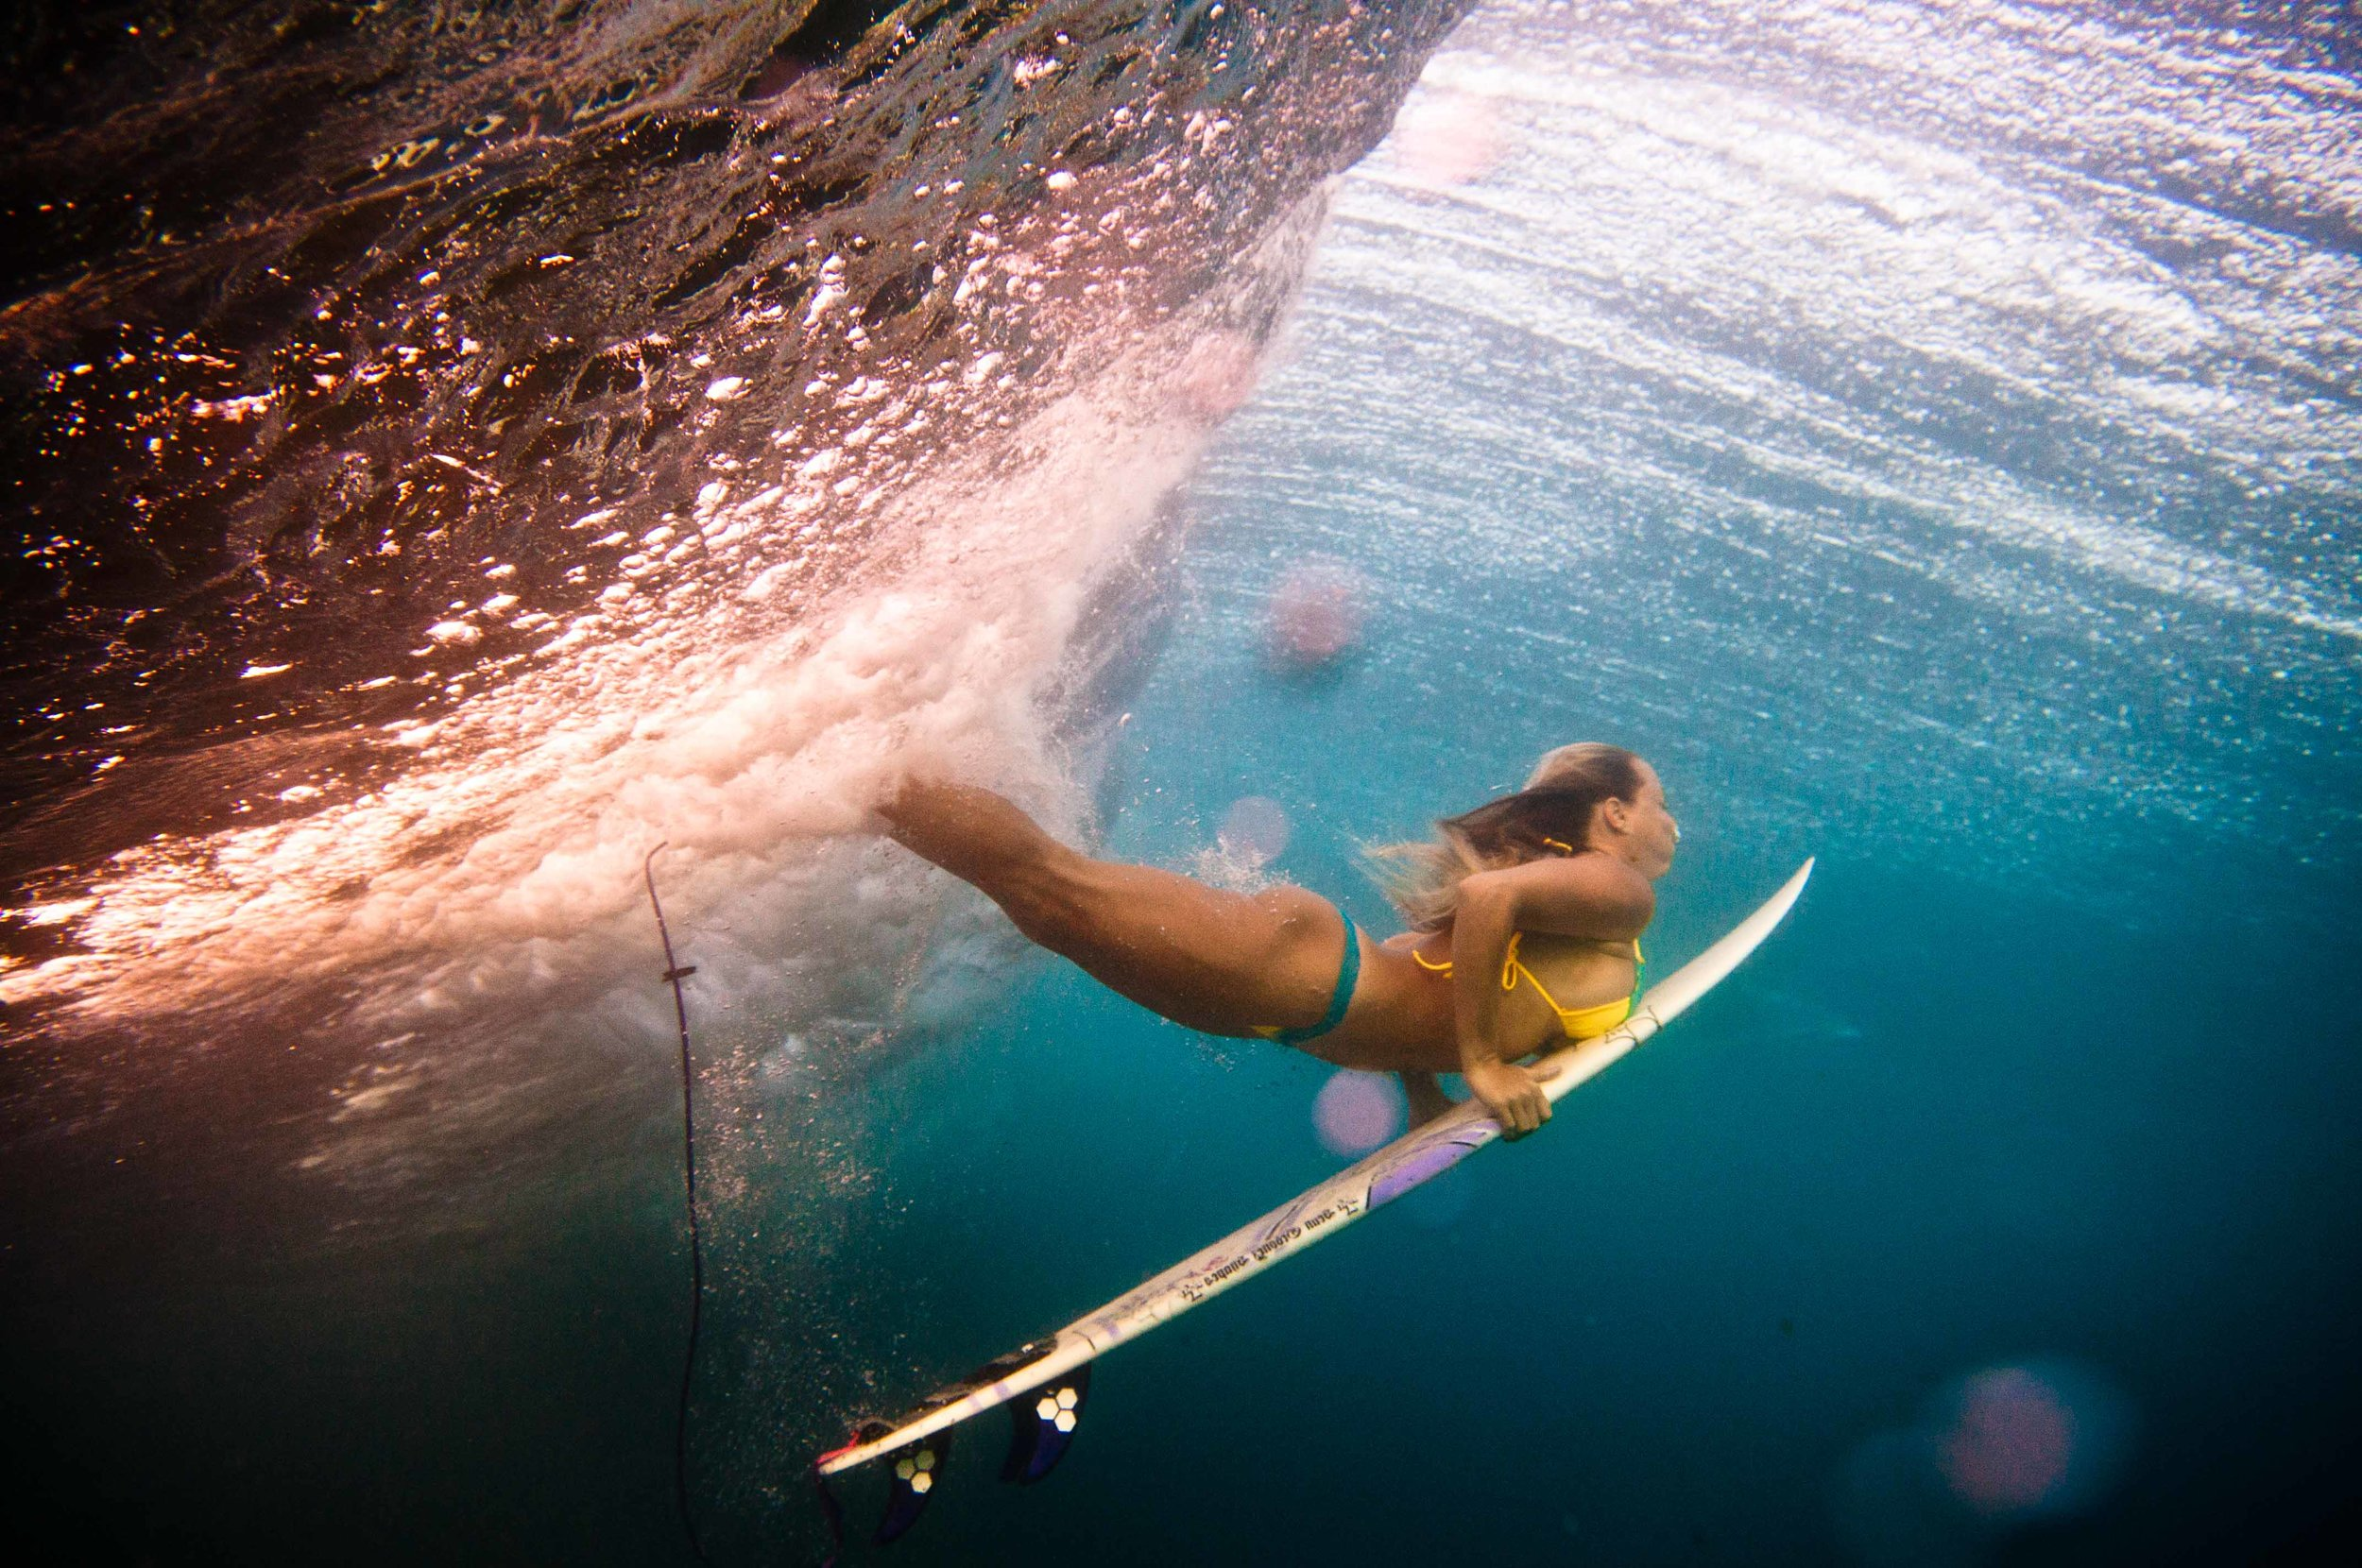 Duck diving, an undeniable advantage of shortboarding. Photo: thesurfphotog.com